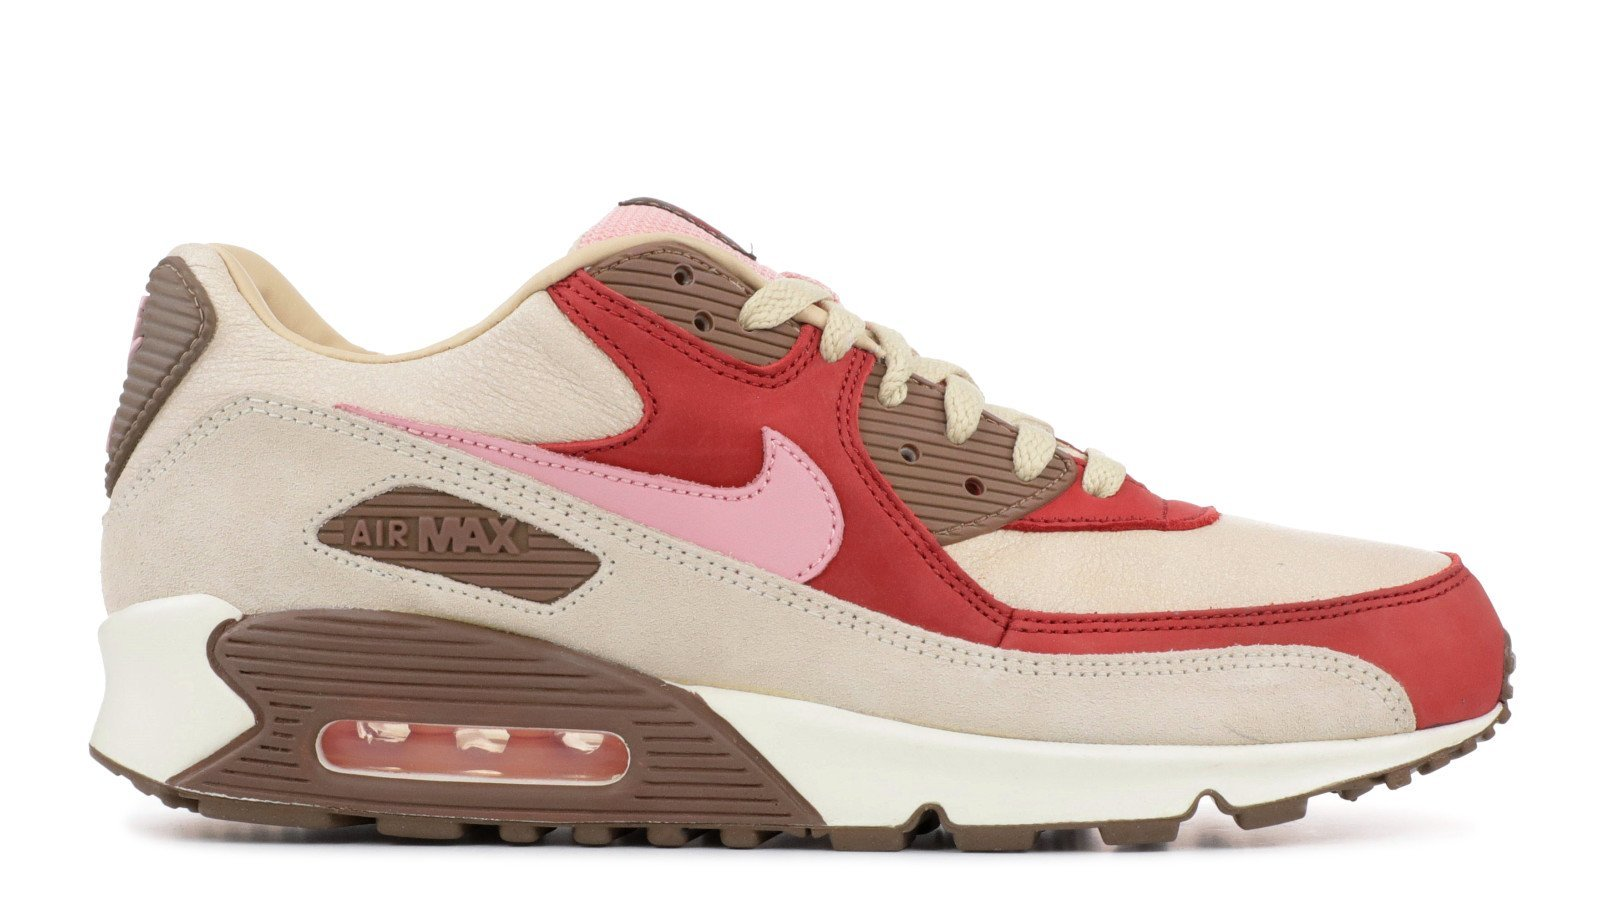 DQM x Nike Air Max 90 'Bacon' 2020 Release Date | Sole Collector